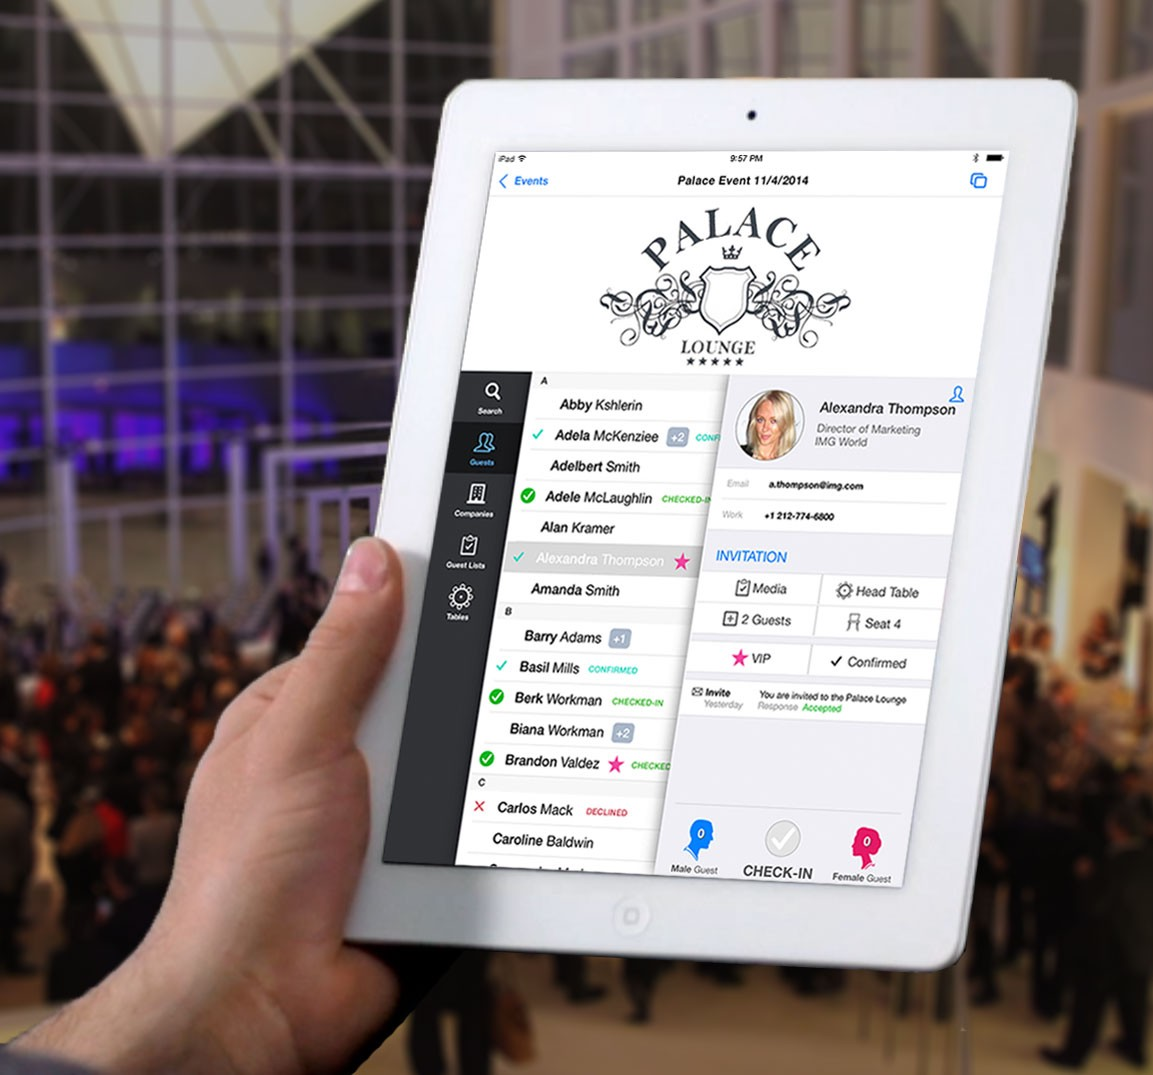 Image of an iPad with the diobox event planning platform.